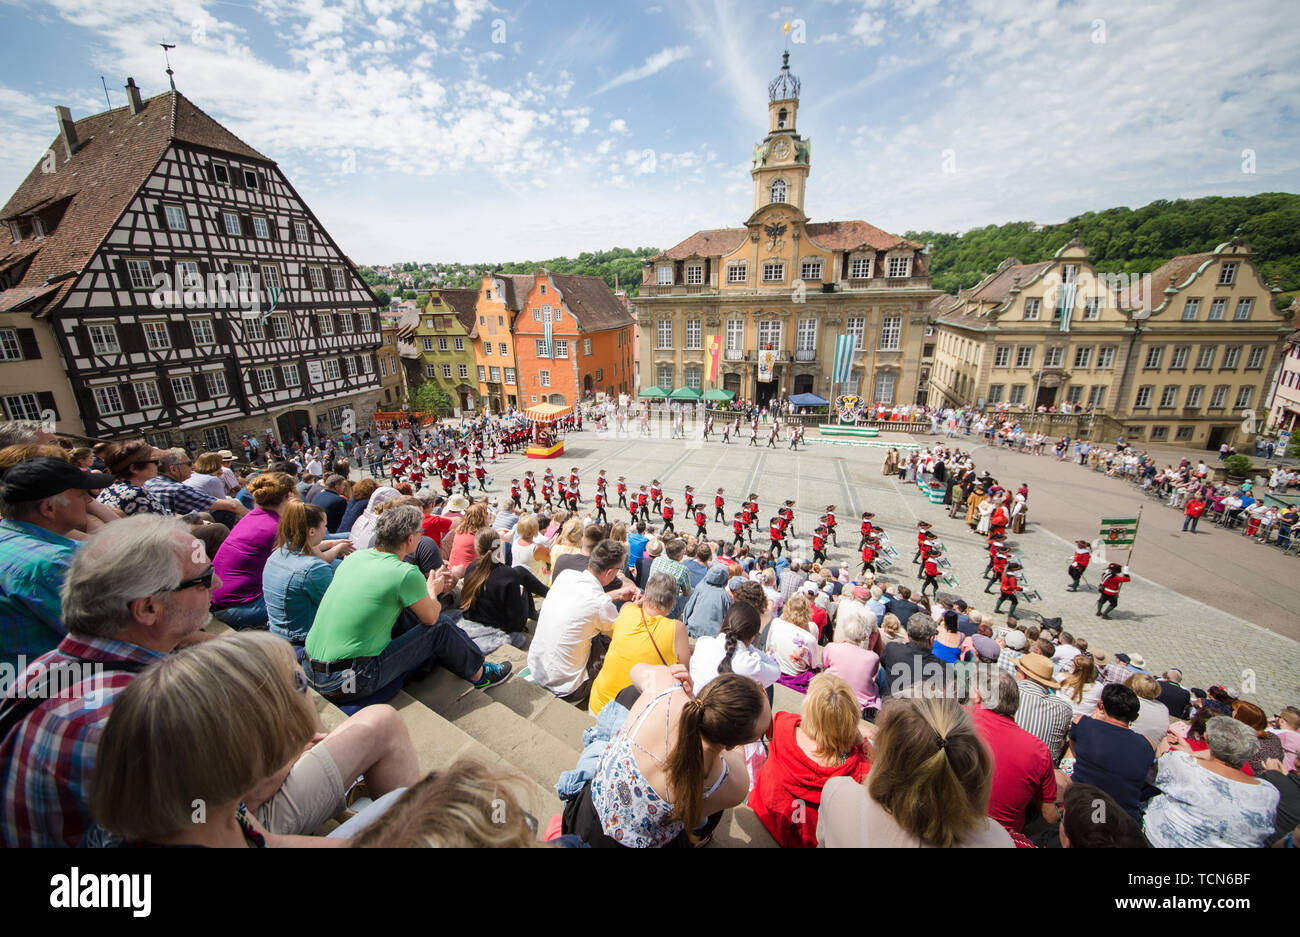 Baden-Wuerttemberg, Germany. 09th June 2019. 09 June 2019, Baden-Wuerttemberg, Schwäbisch Hall: Numerous visitors watch the cake and fountain festival on the market square. The festival with more than 500 actors and helpers offers a mixture of medieval customs and music. Photo: Christoph Schmidt/dpa Credit: dpa picture alliance/Alamy Live News - Stock Image